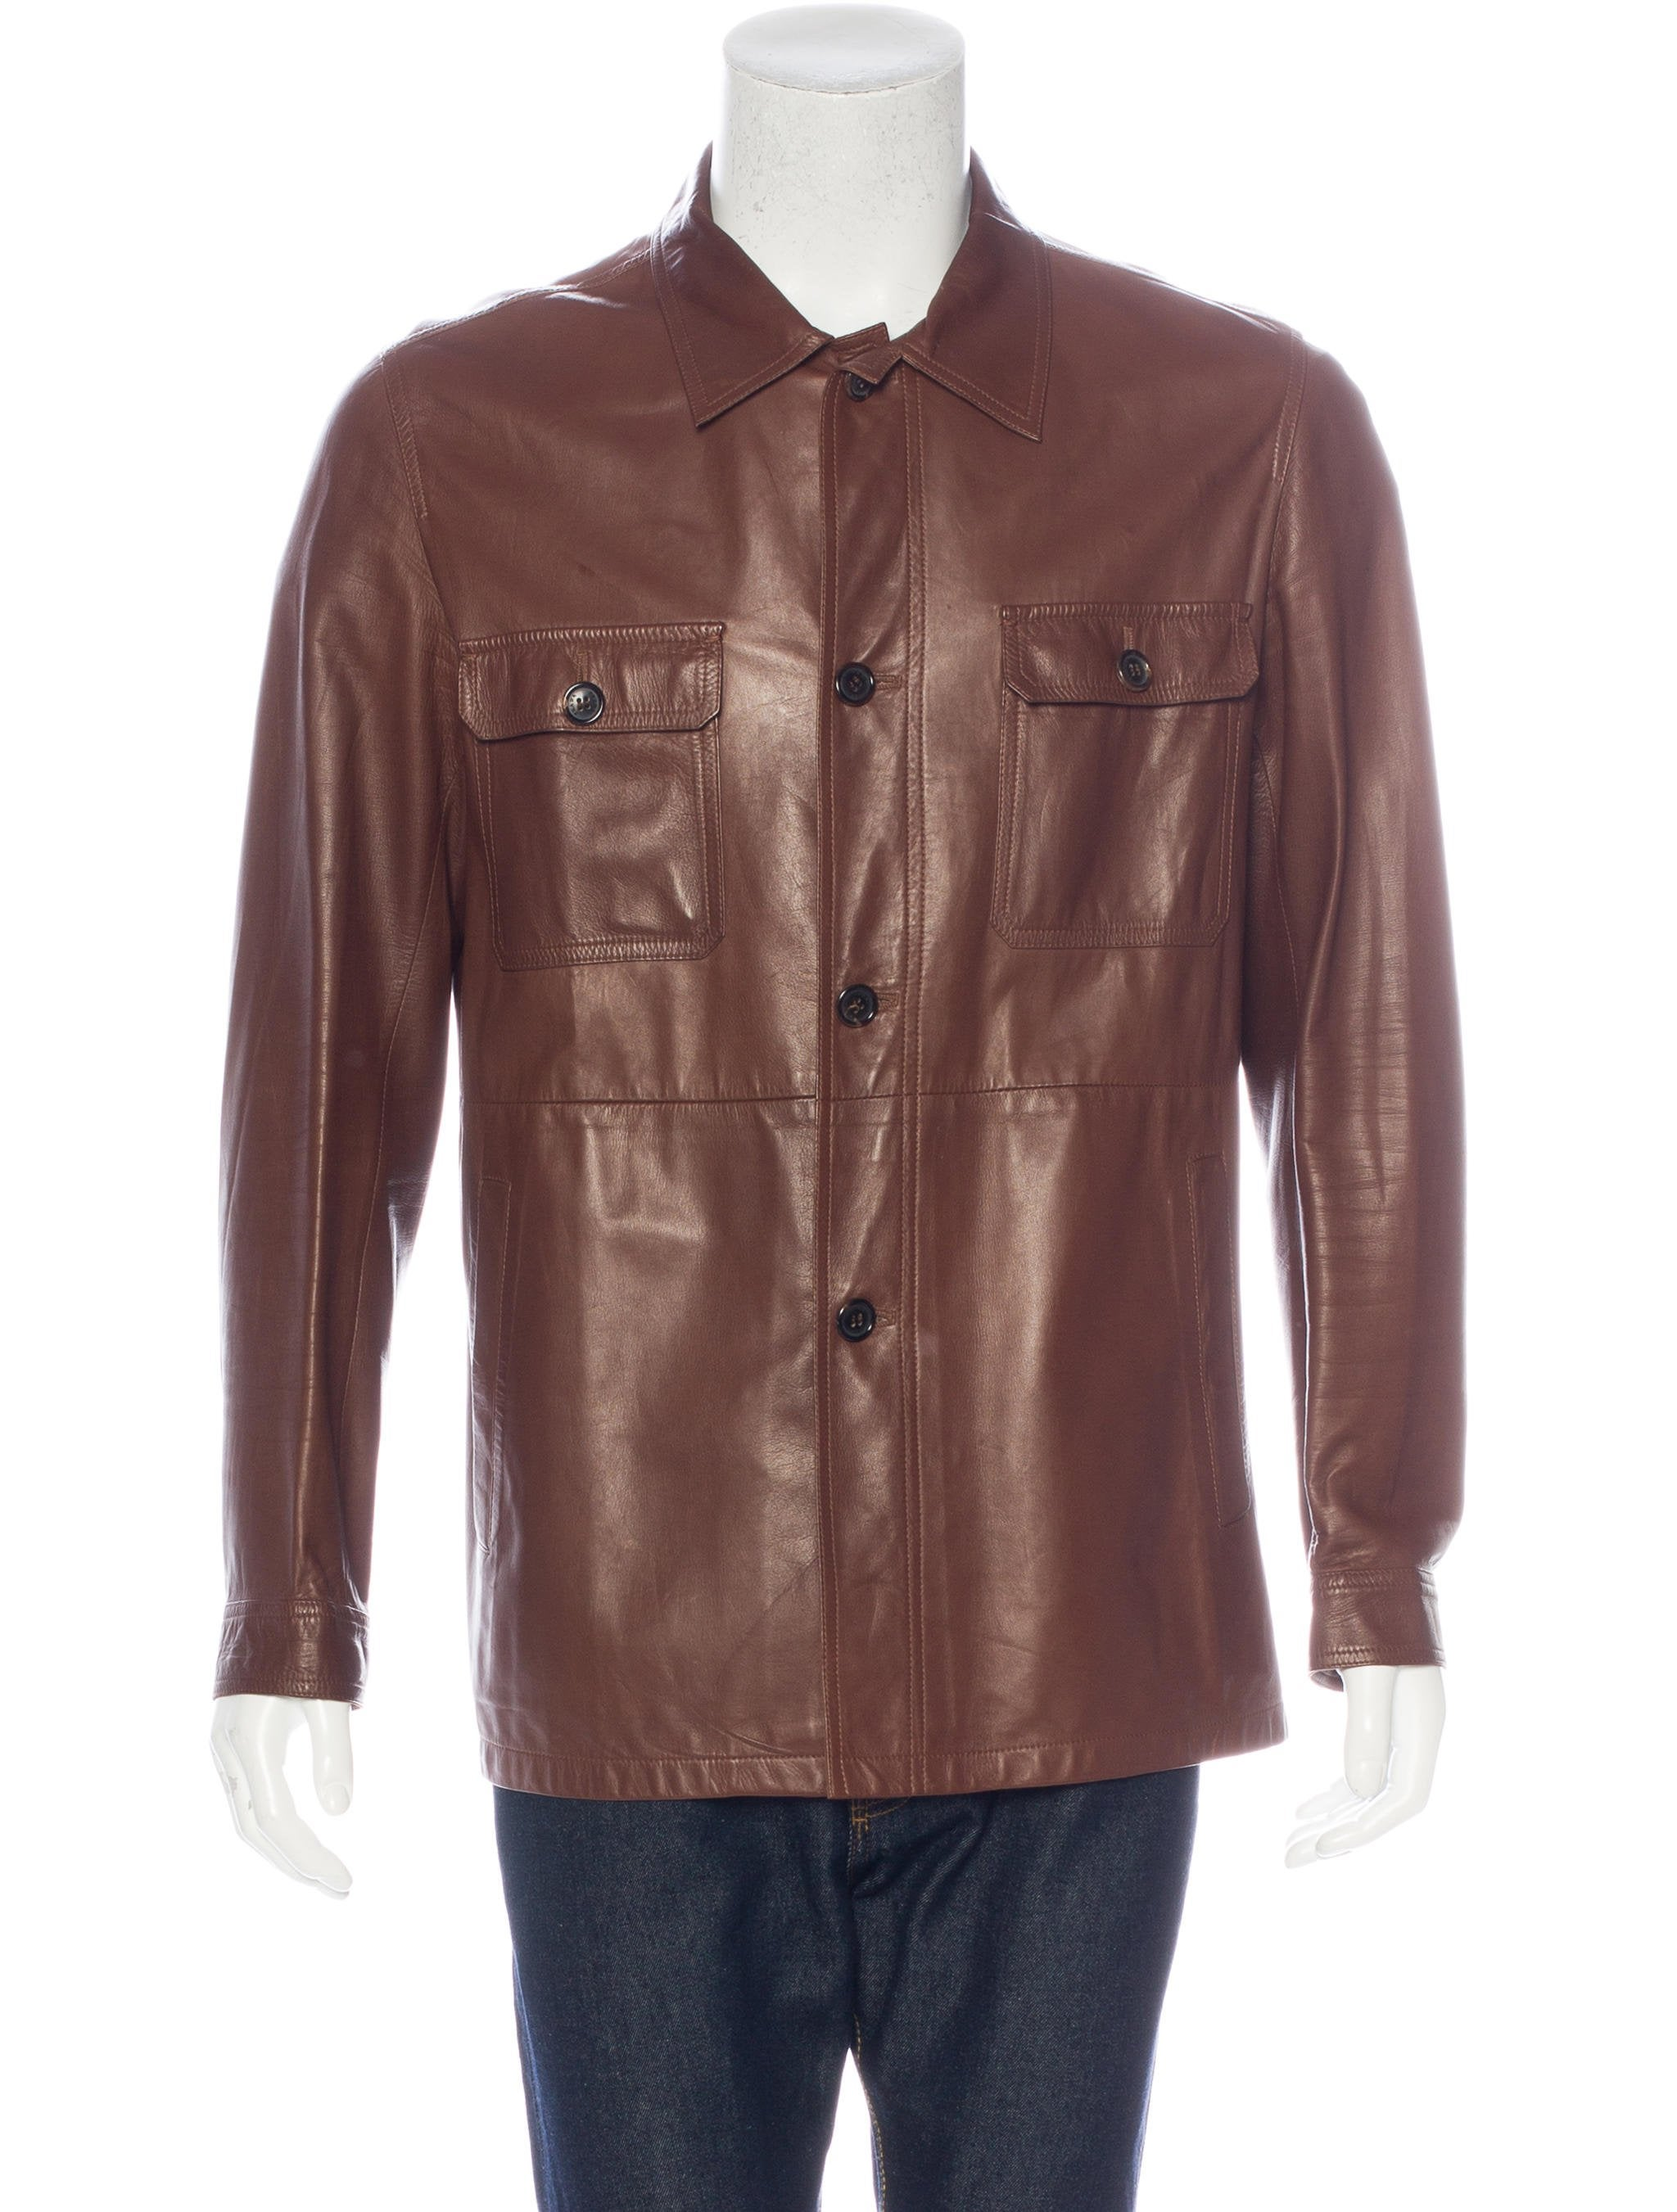 Fine Leather Jacket Men ($ - $): 30 of items - Shop Fine Leather Jacket Men from ALL your favorite stores & find HUGE SAVINGS up to 80% off Fine Leather Jacket Men, including GREAT DEALS like FashionOutfit Men's Fine Quality Hood Detachable Faux Leather Contrast Stadium Jacket ($).